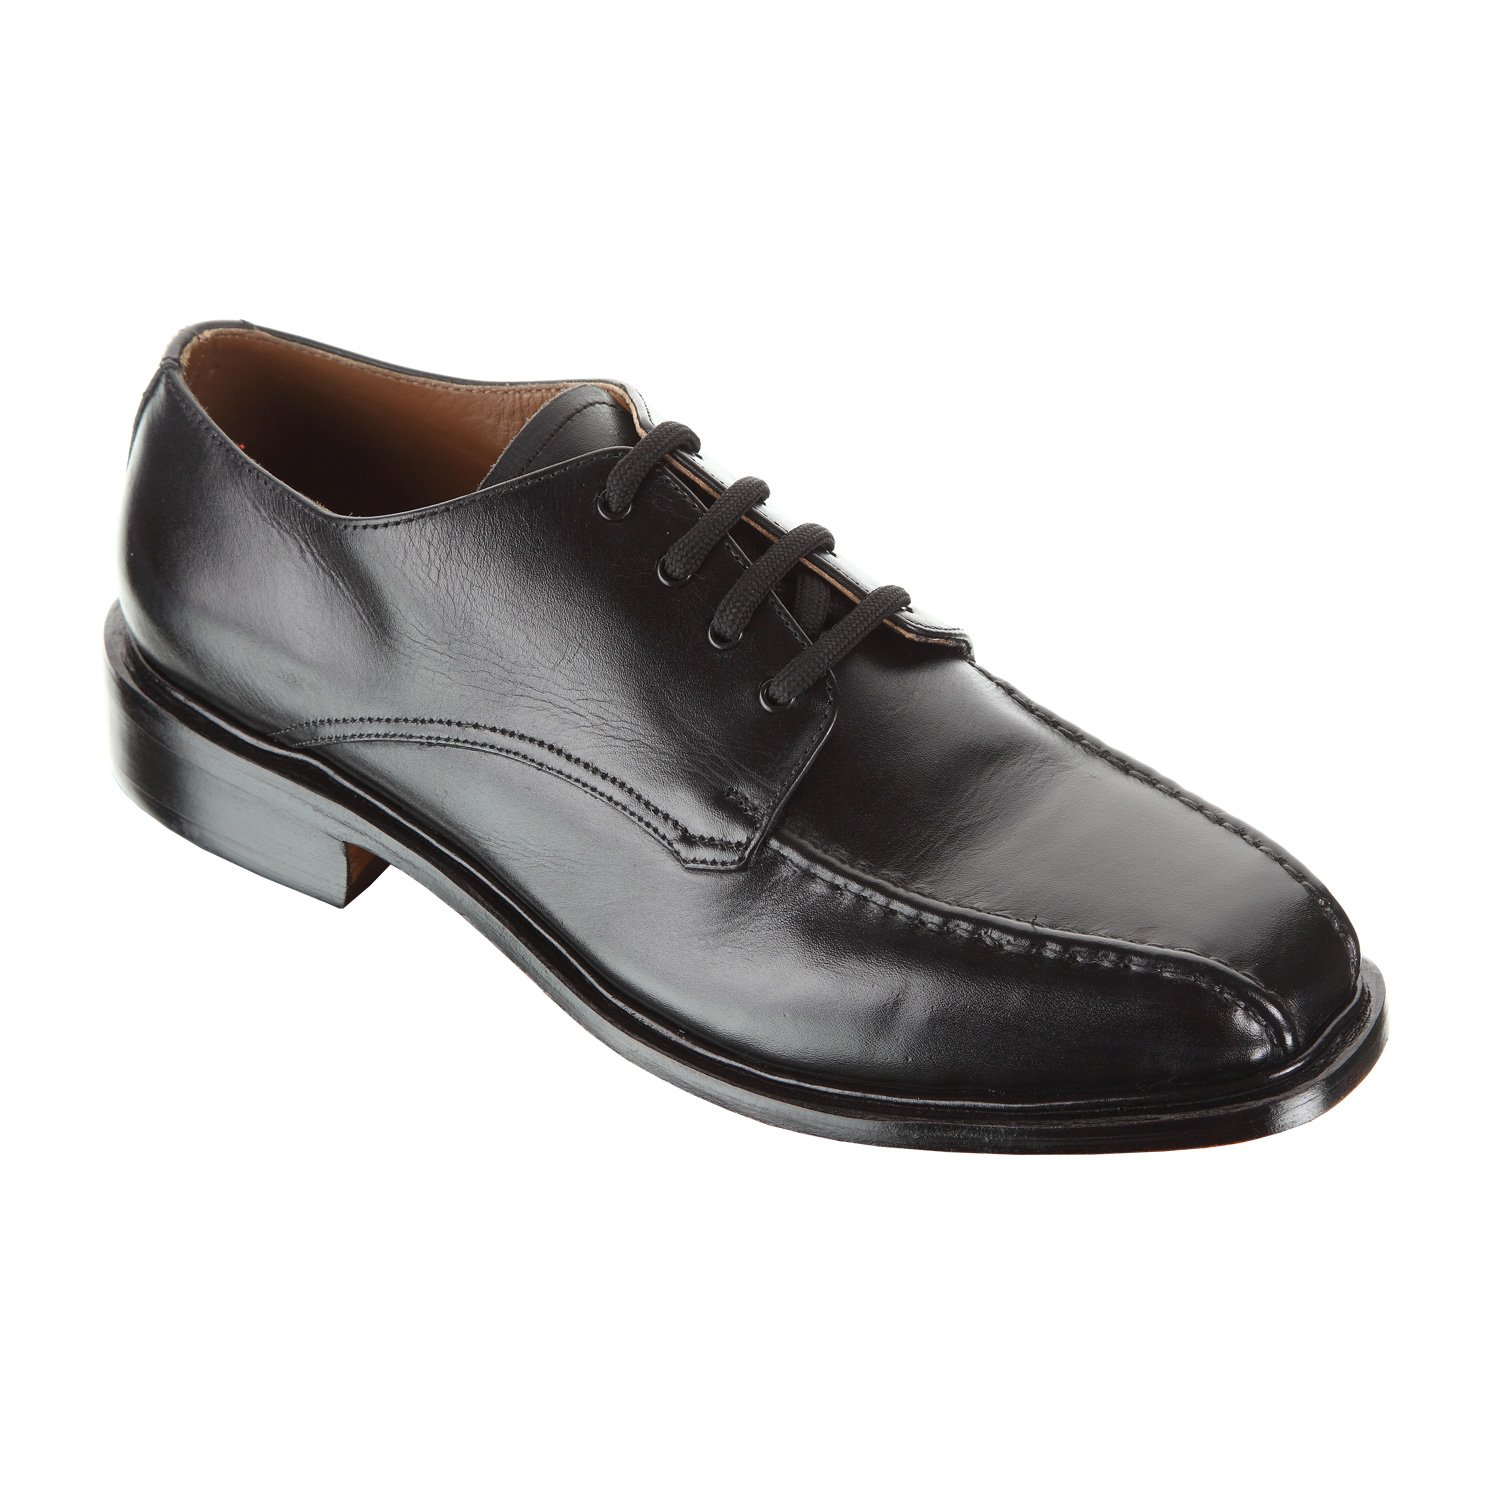 Handmade Damen Frost Taggart Mens Lace-up Leather Shoes with Double Stitched Design and High Quality Leather, Color Black, Size US11